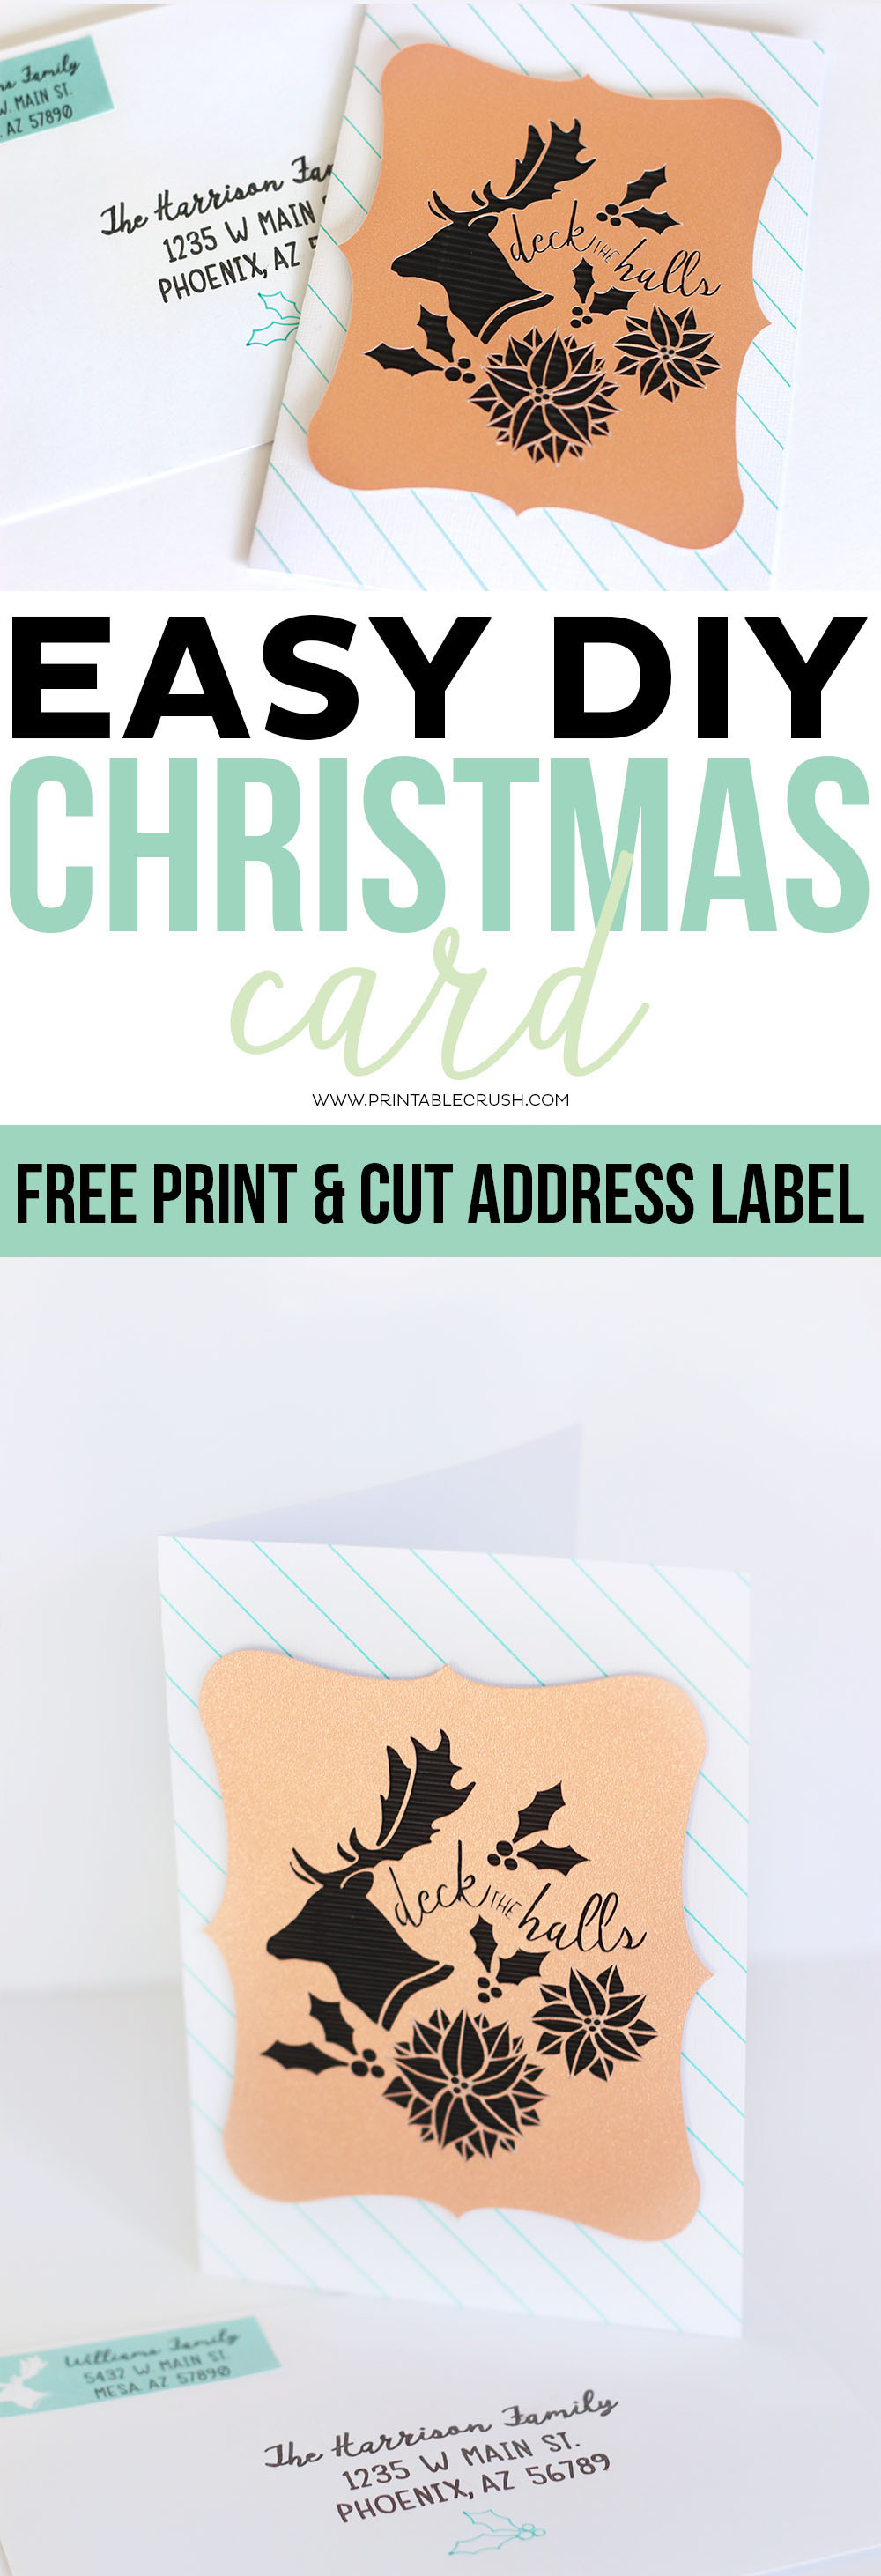 This Easy DIY Christmas Card Tutorial Also Comes With A FREE Printable  Address Label! You  Printable Address Labels Free